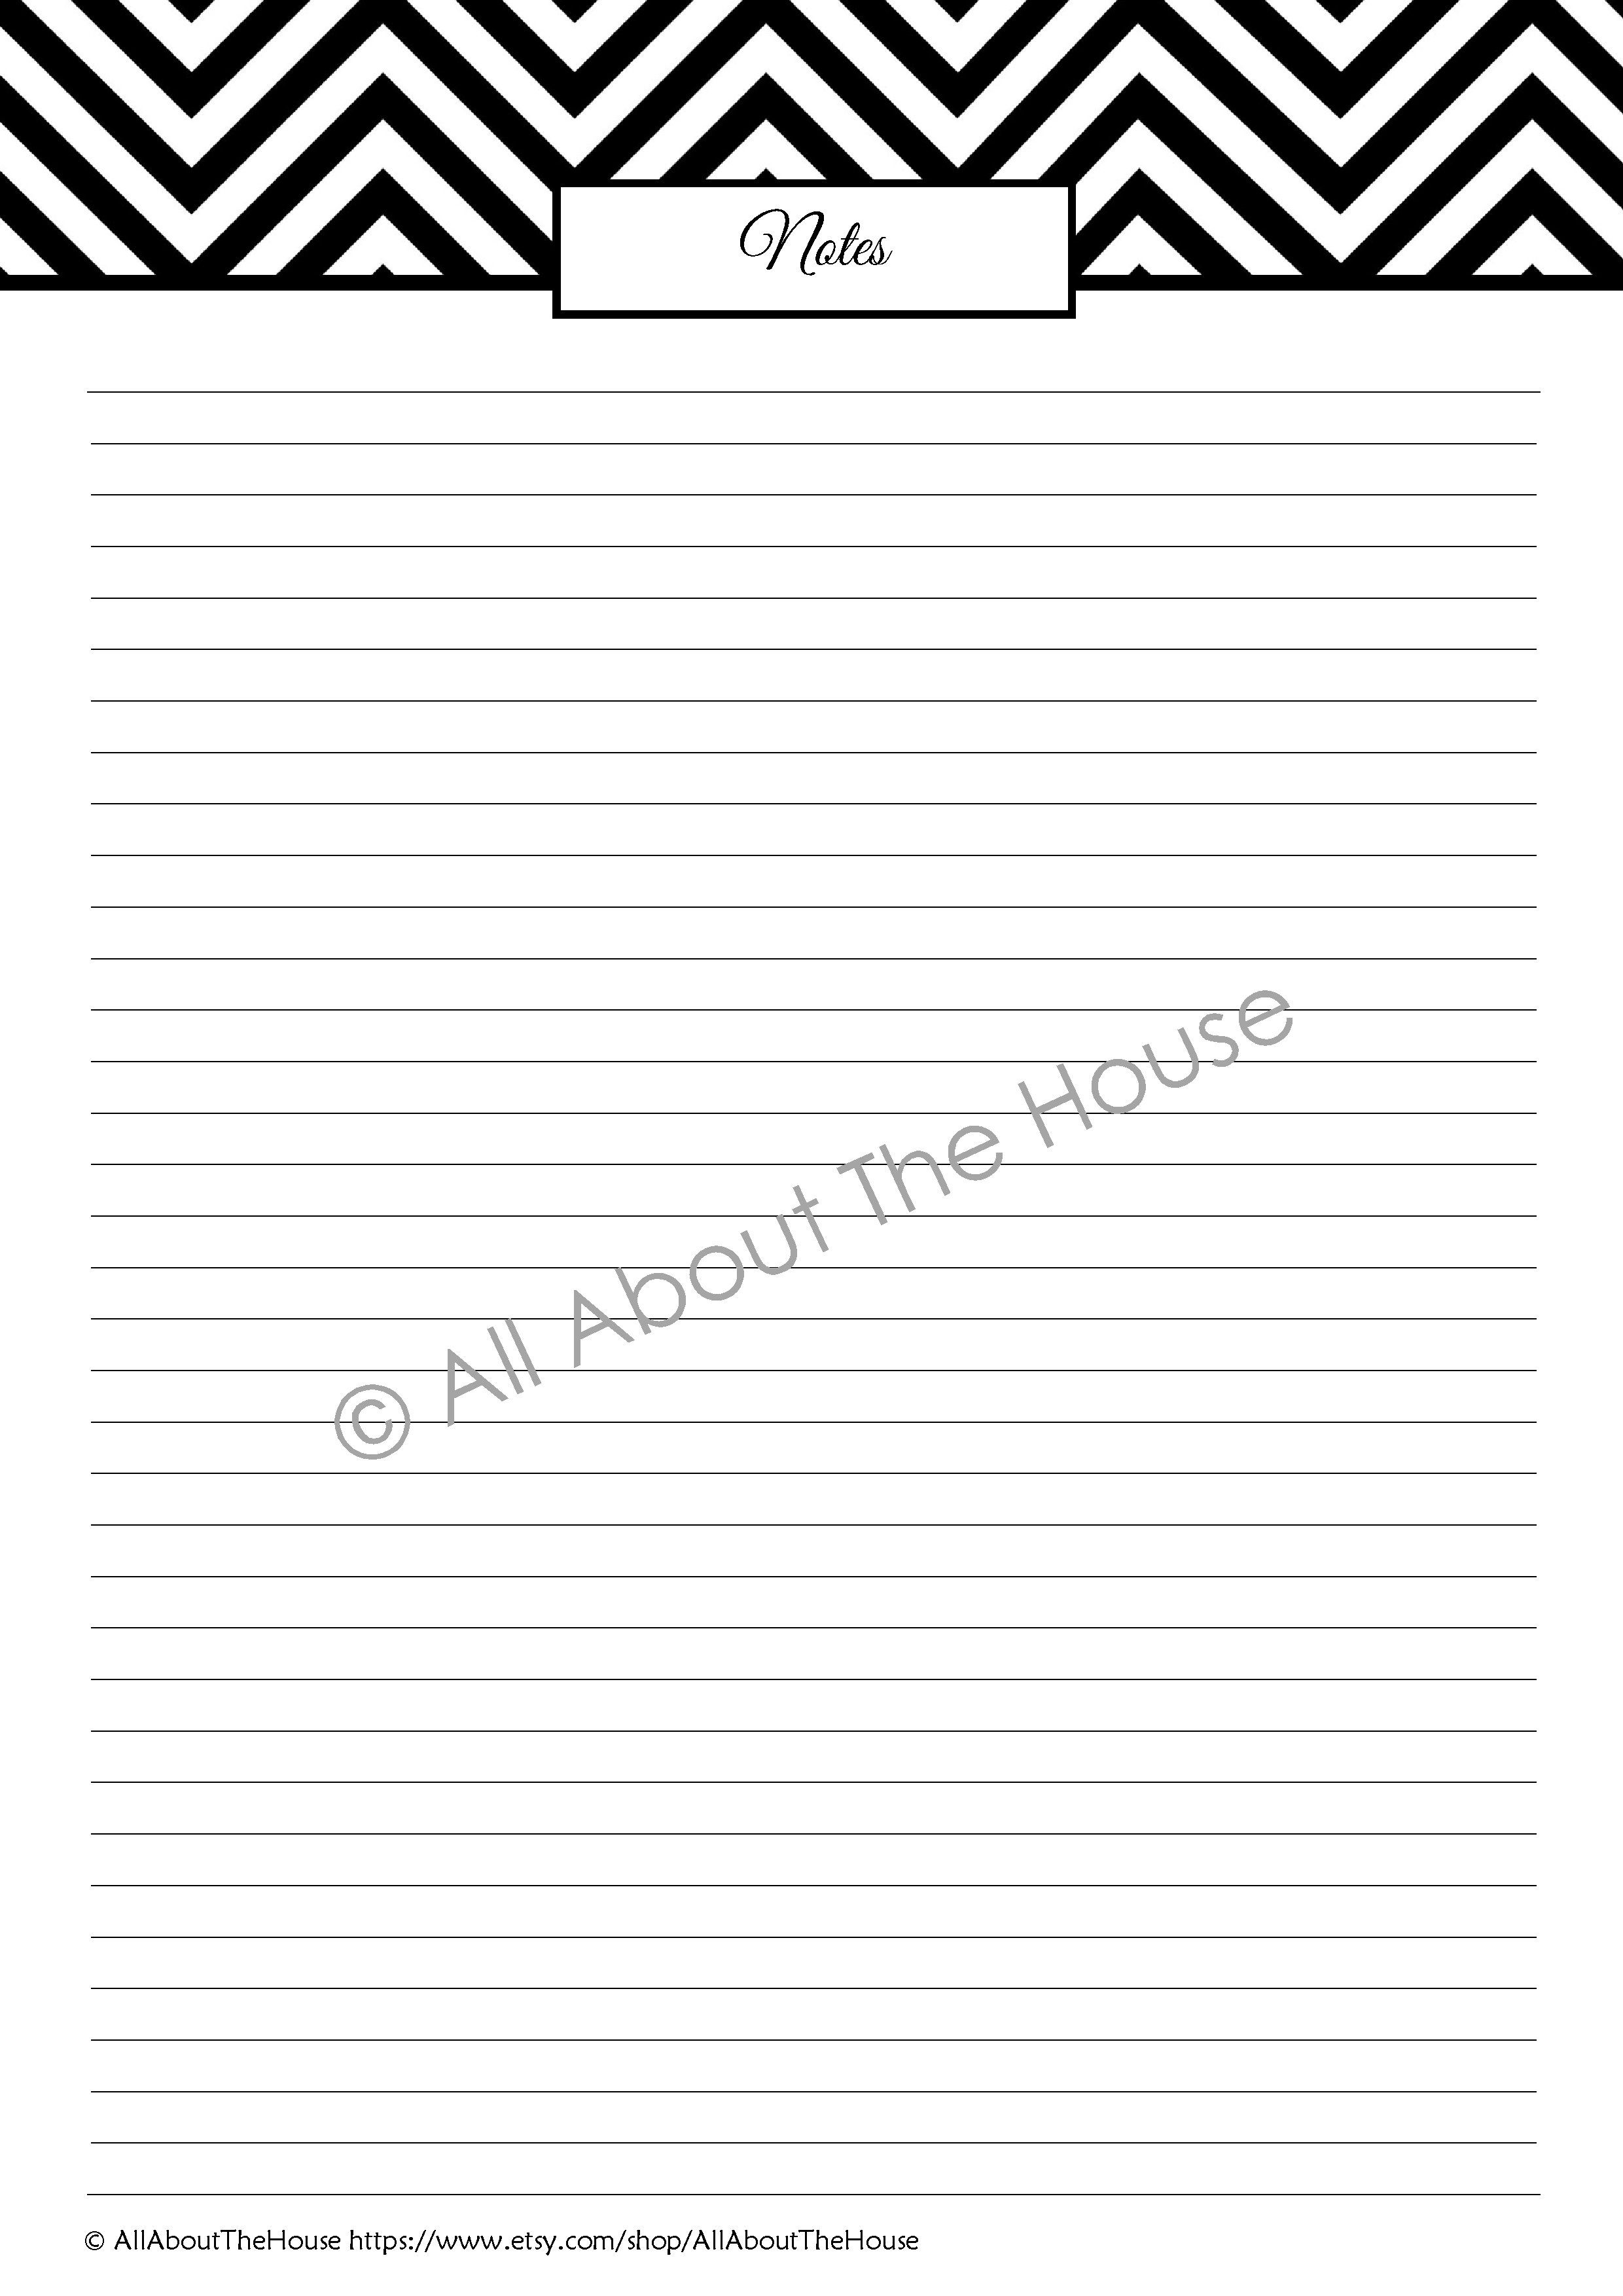 Note Paper from the Important Information Set. Available in 5 colours from: https://www.etsy.com/shop/AllAboutTheHouse?ref=si_shop